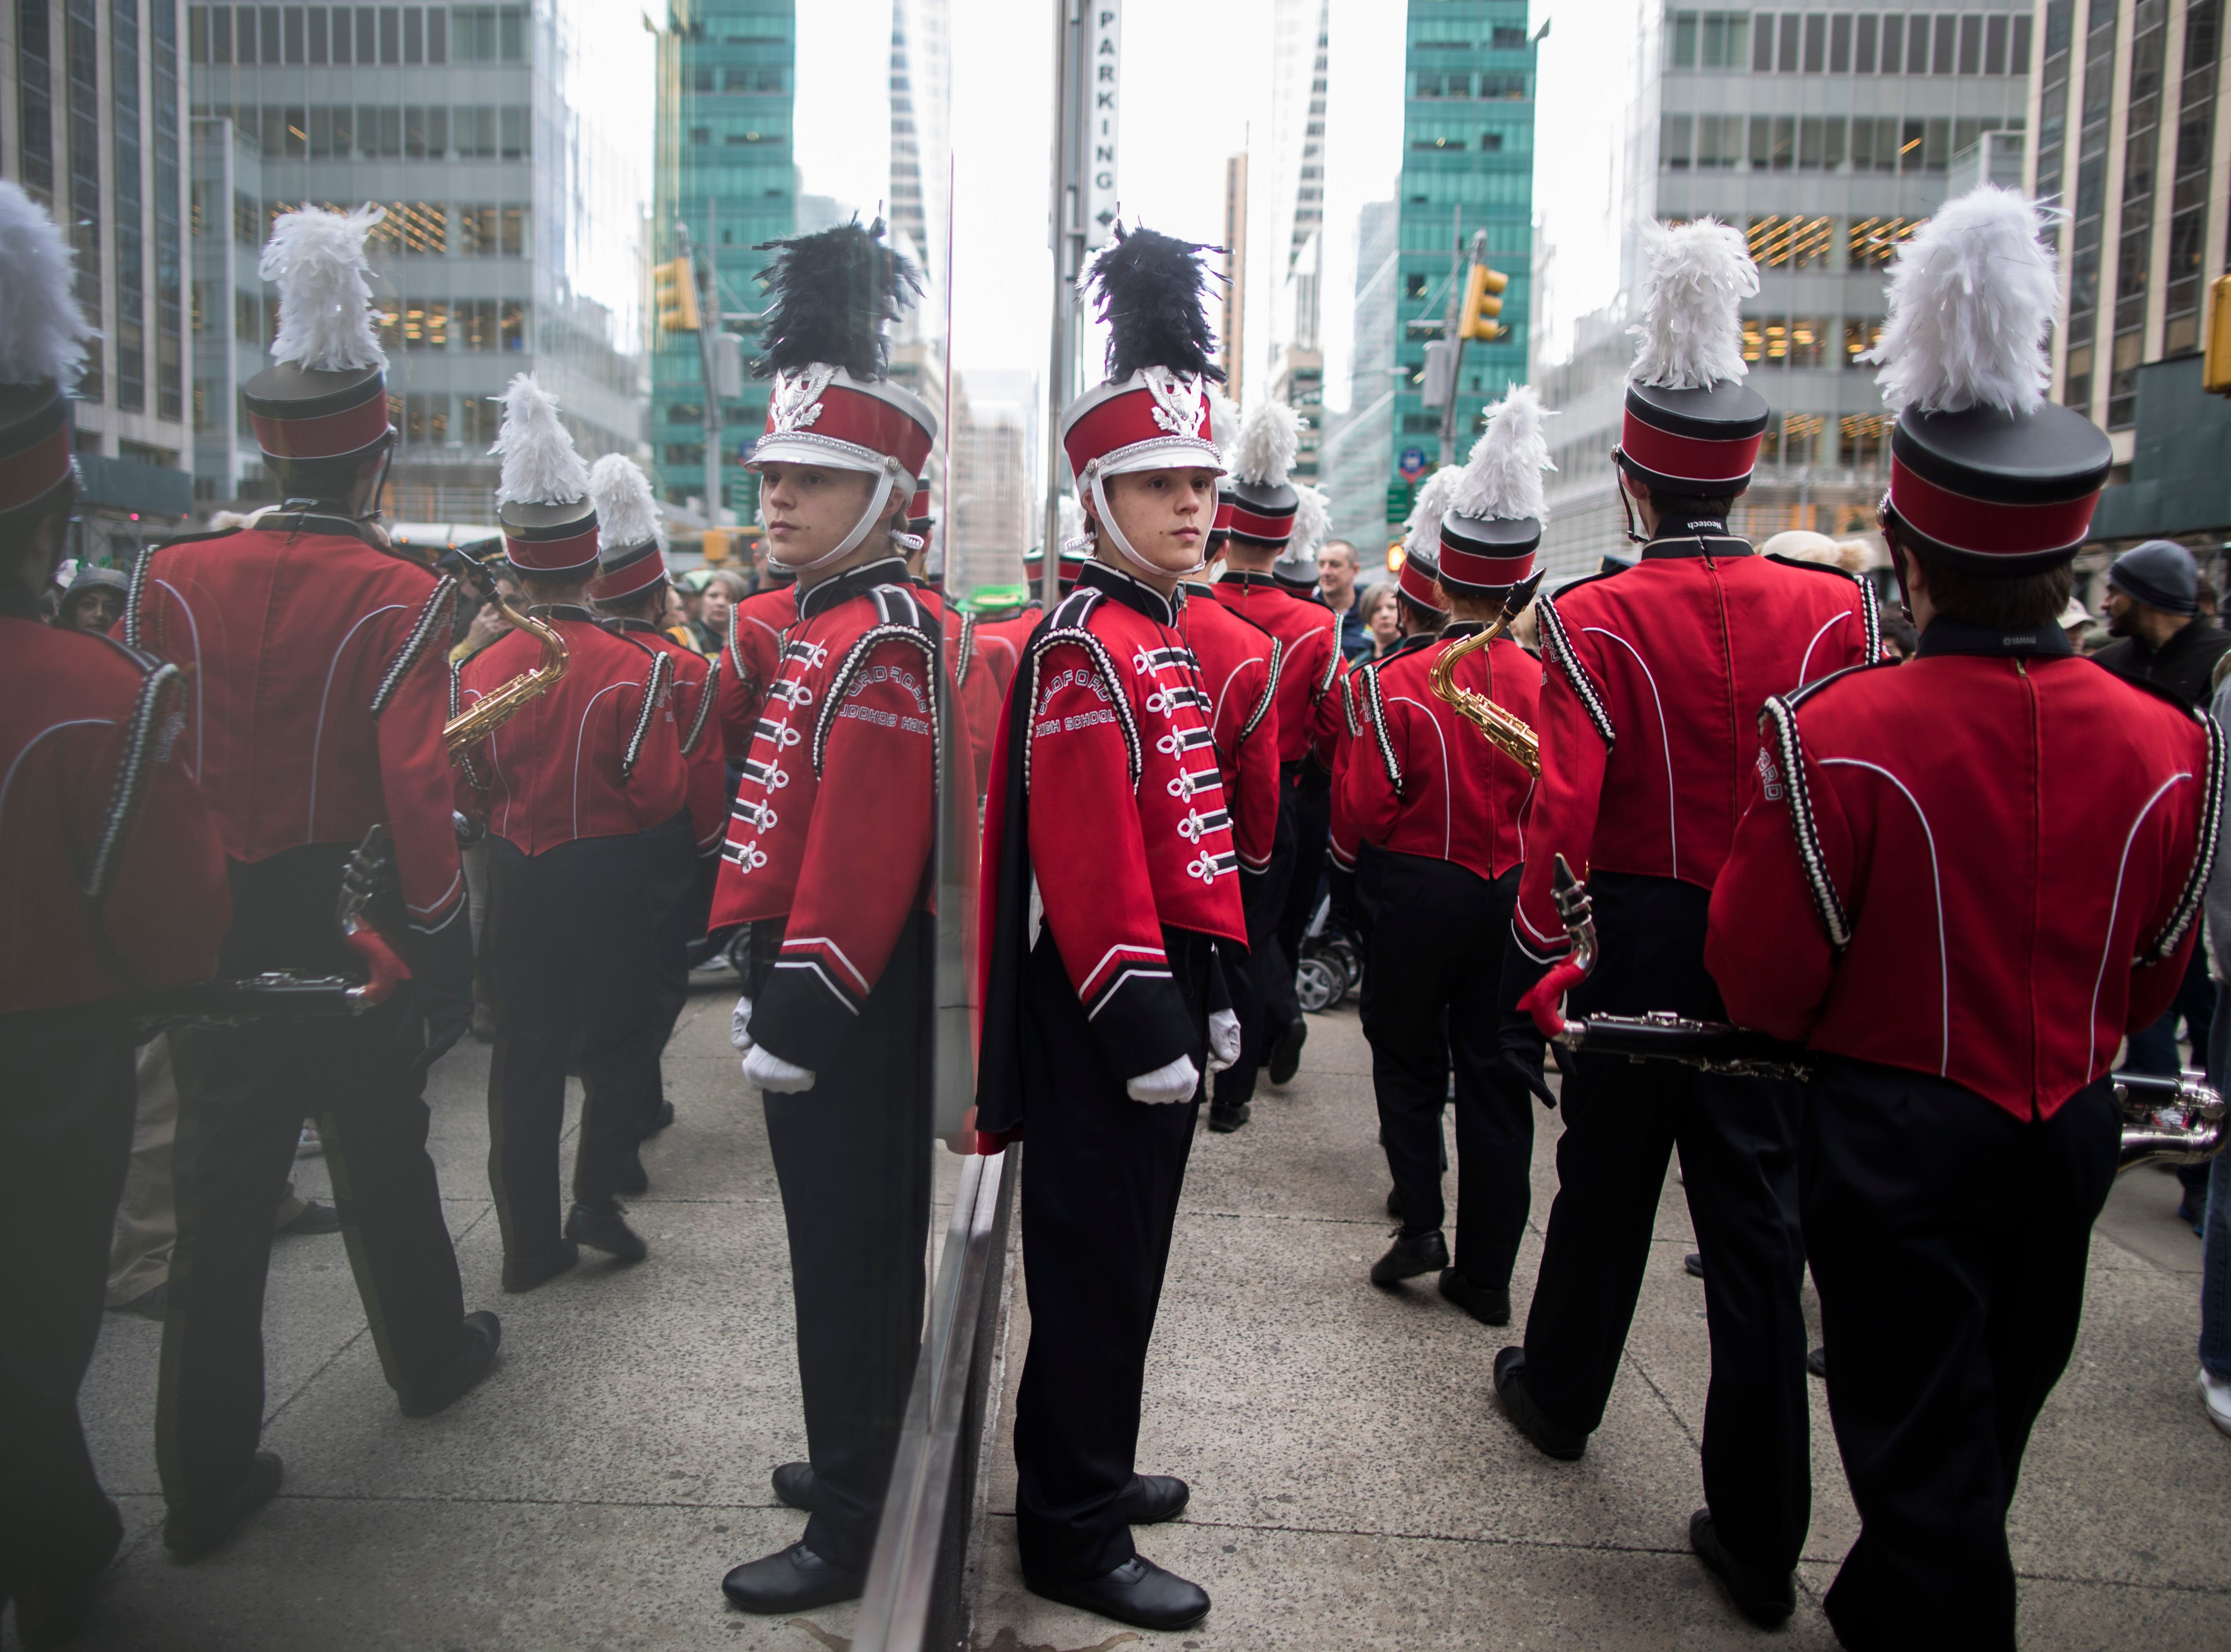 Members of a band line up before marching up Fifth Avenue during the St. Patrick's Day Parade, Saturday, March 16, 2019, in New York.